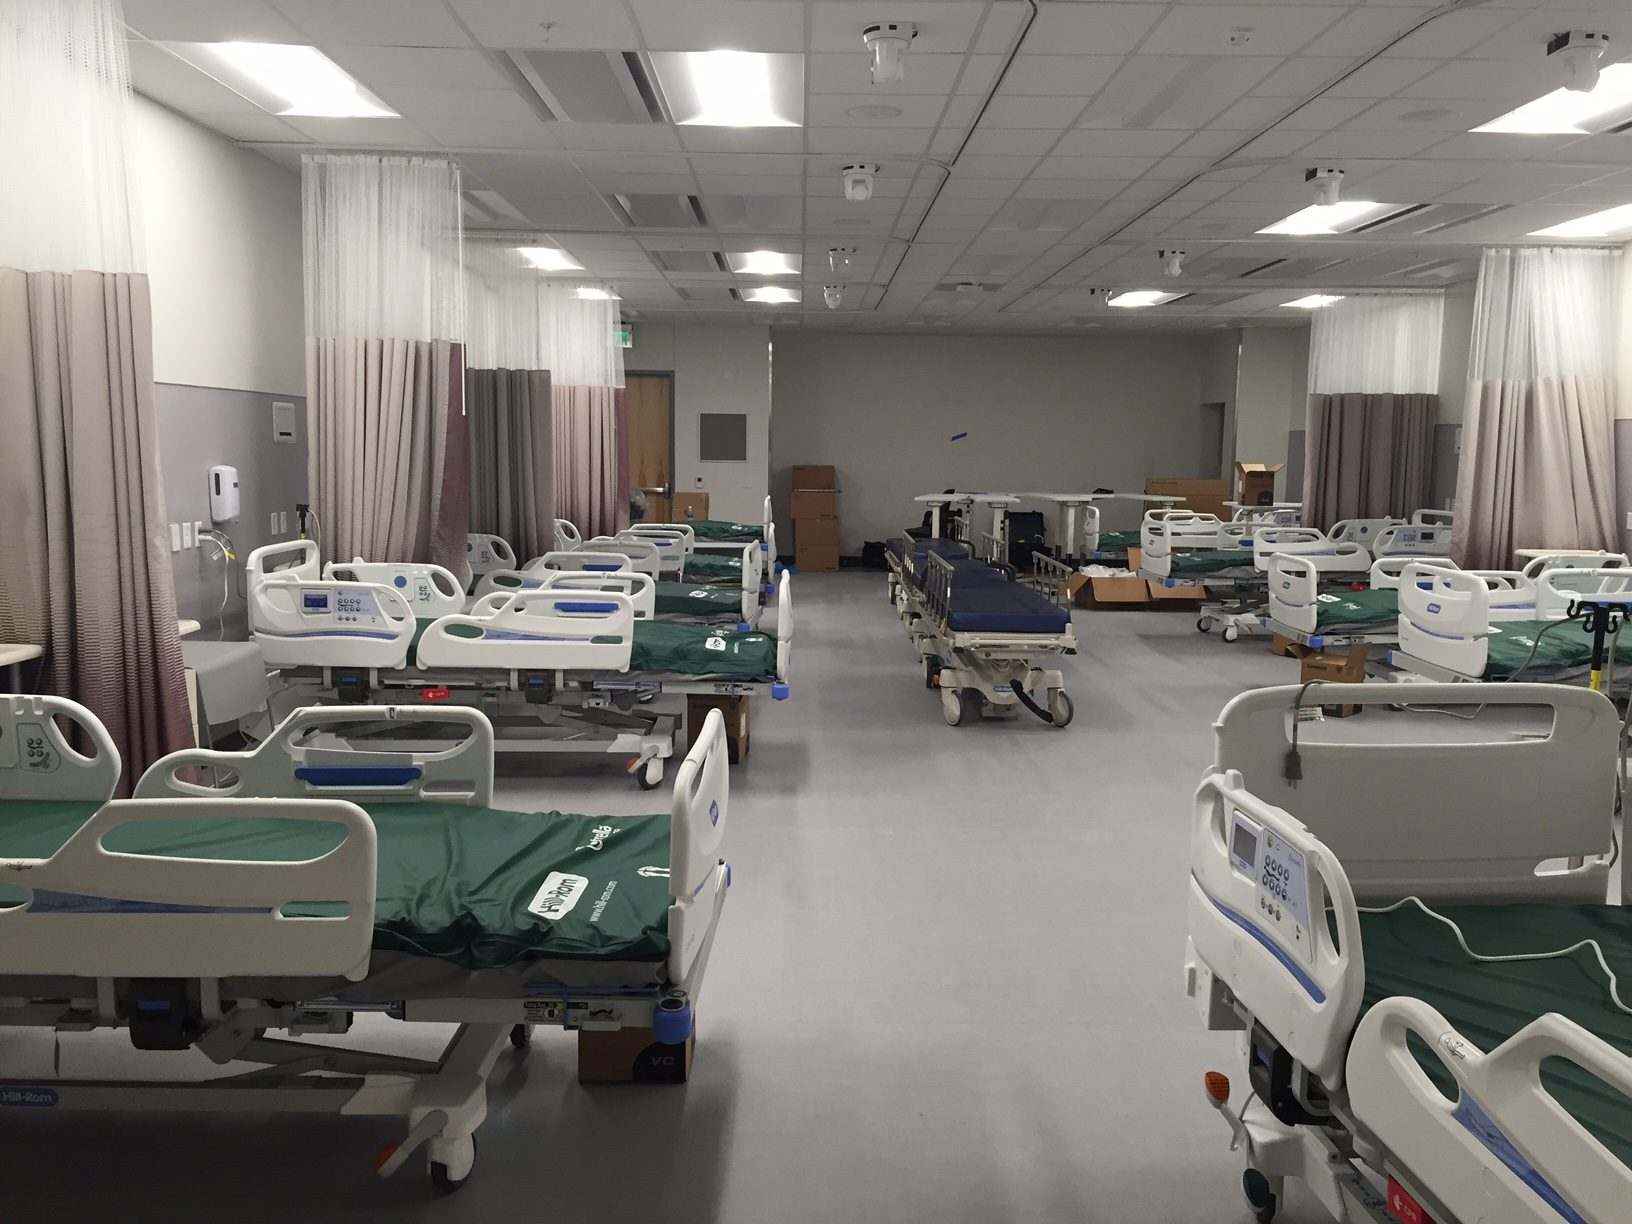 Highland Campus Phase 2 health sciences simulation skills lab